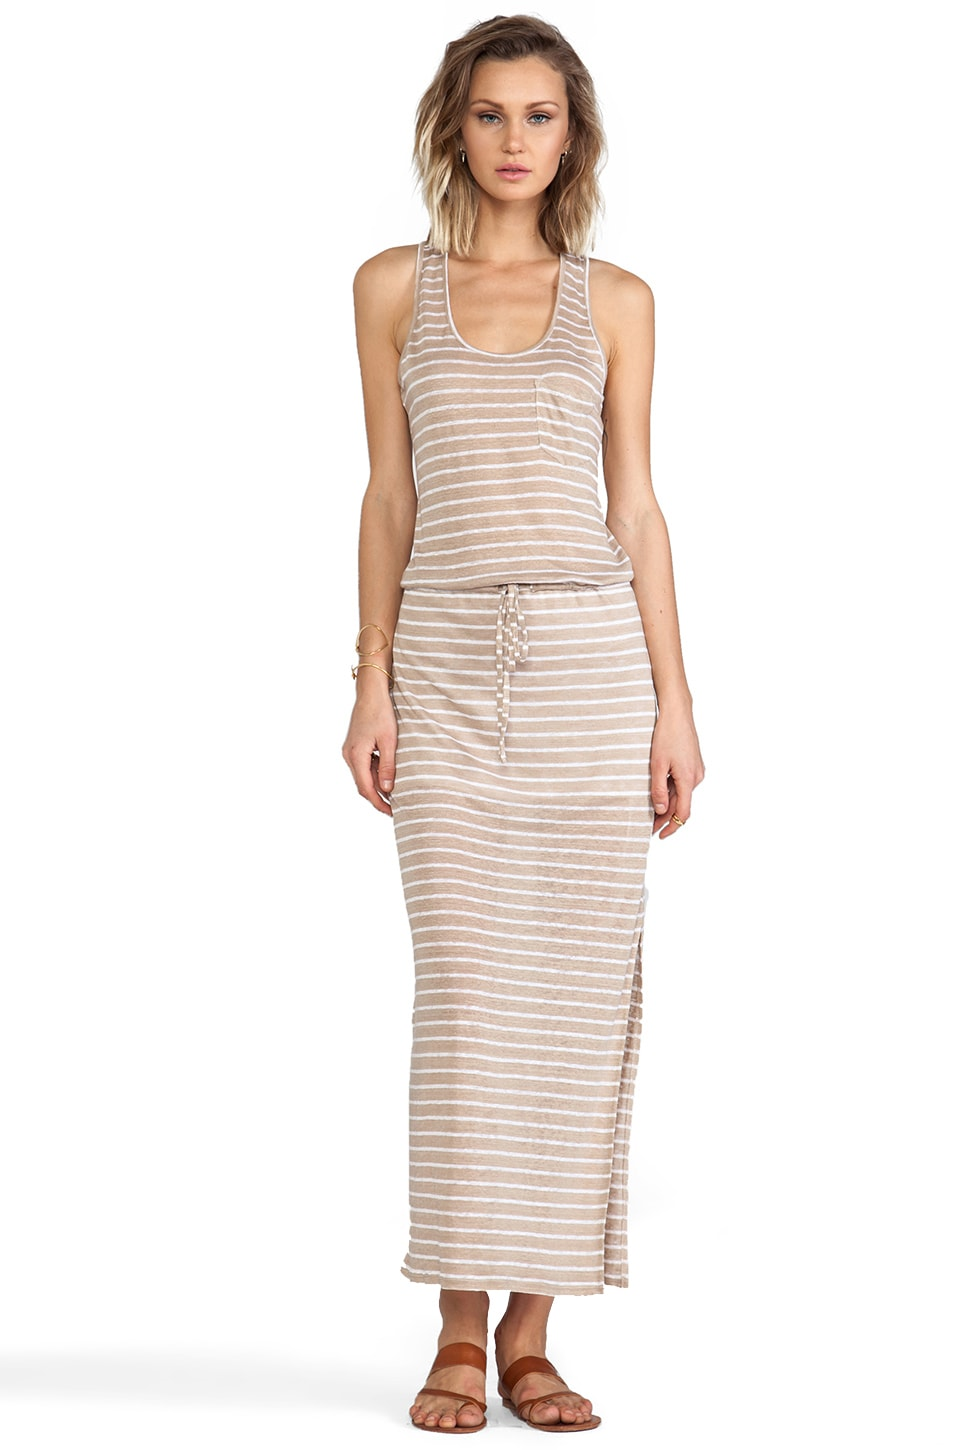 C&C California Racerback Maxi Dress in Dark Desert Sand